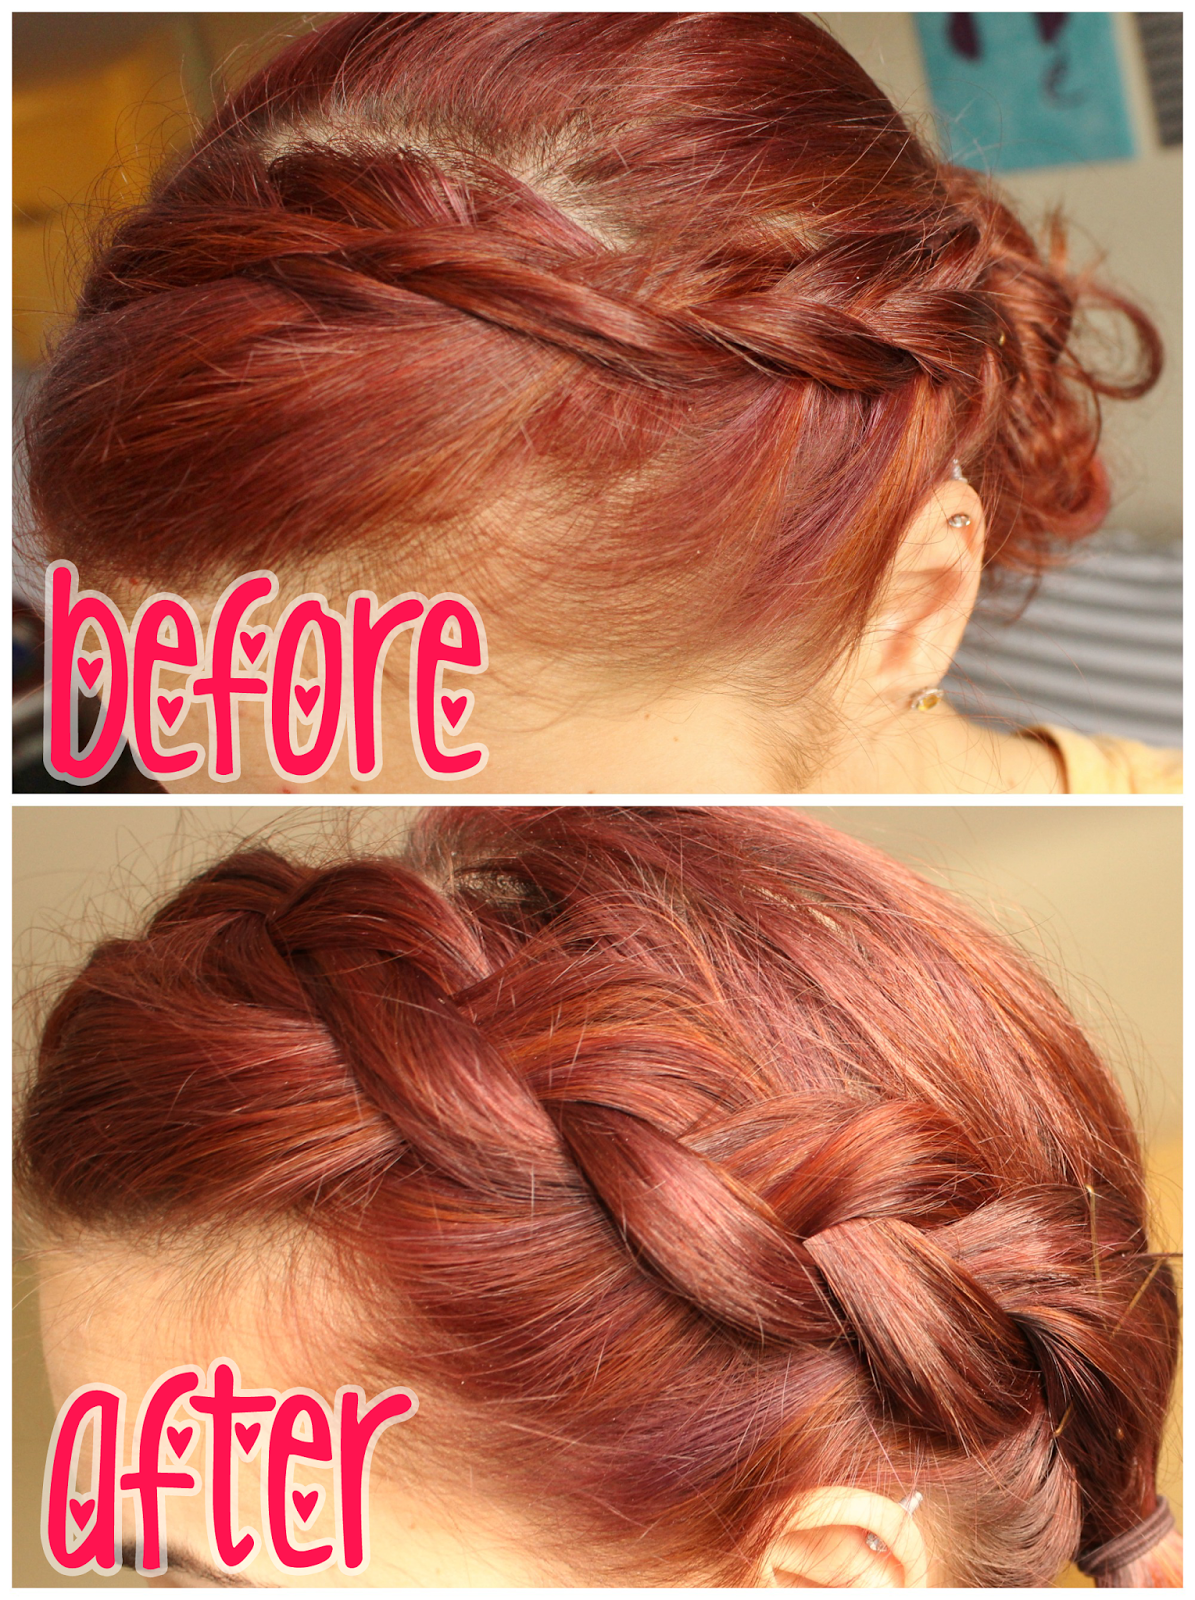 how to: get a thick bohemian braid - even if you have thin